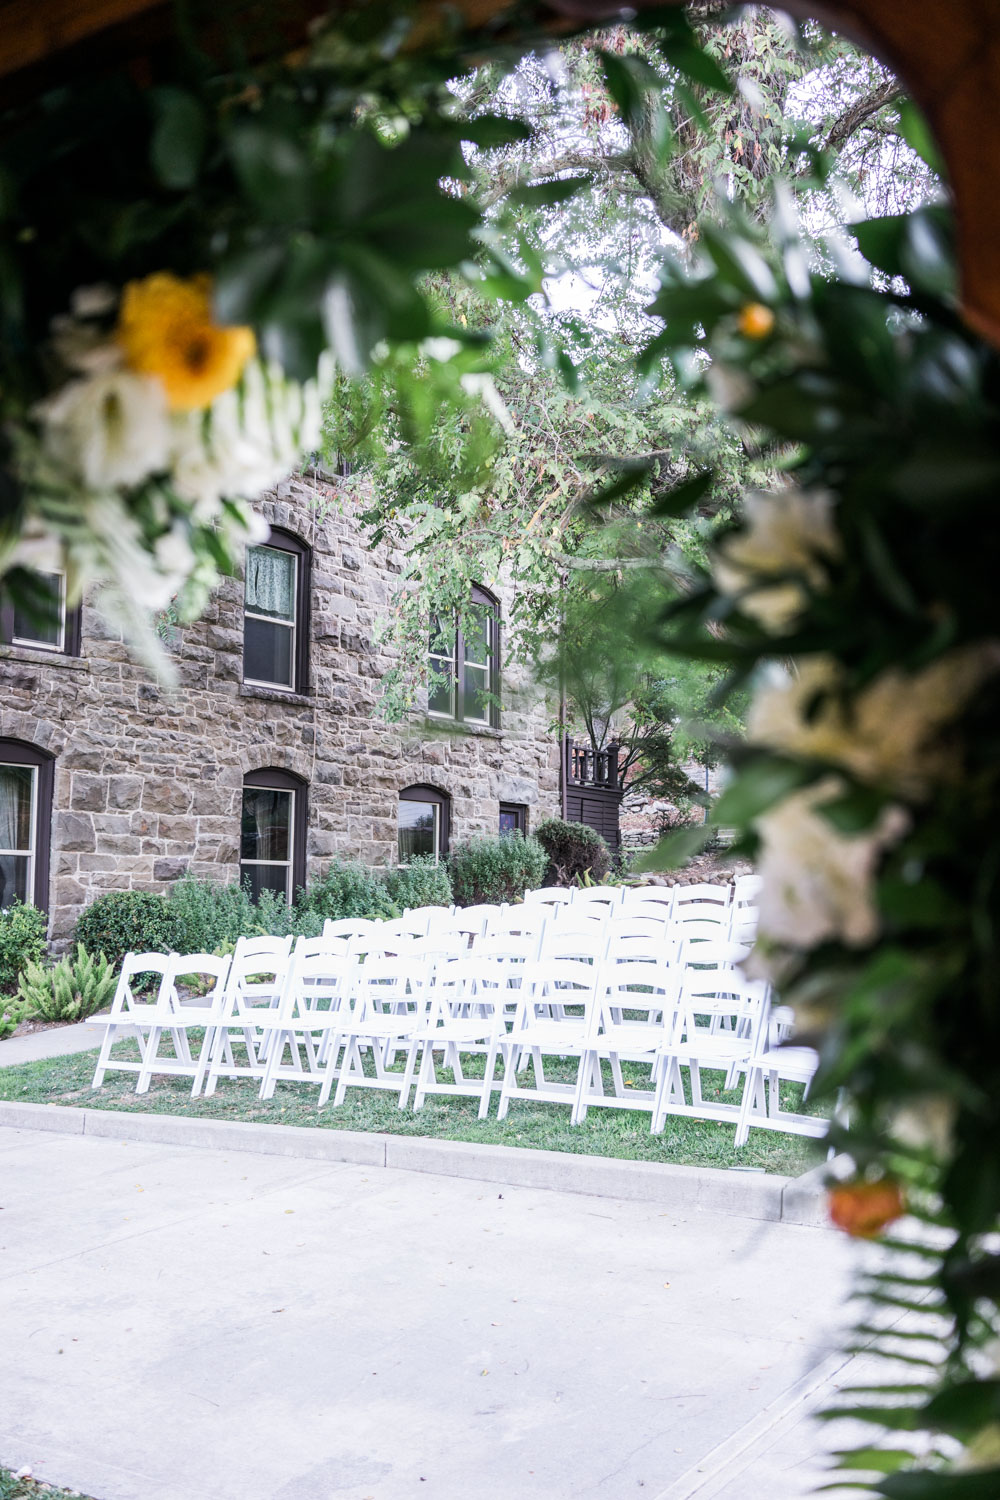 Seating arrangement using white chairs for the guests attending the wedding at Elliston Vineyard, Sunol, CA.